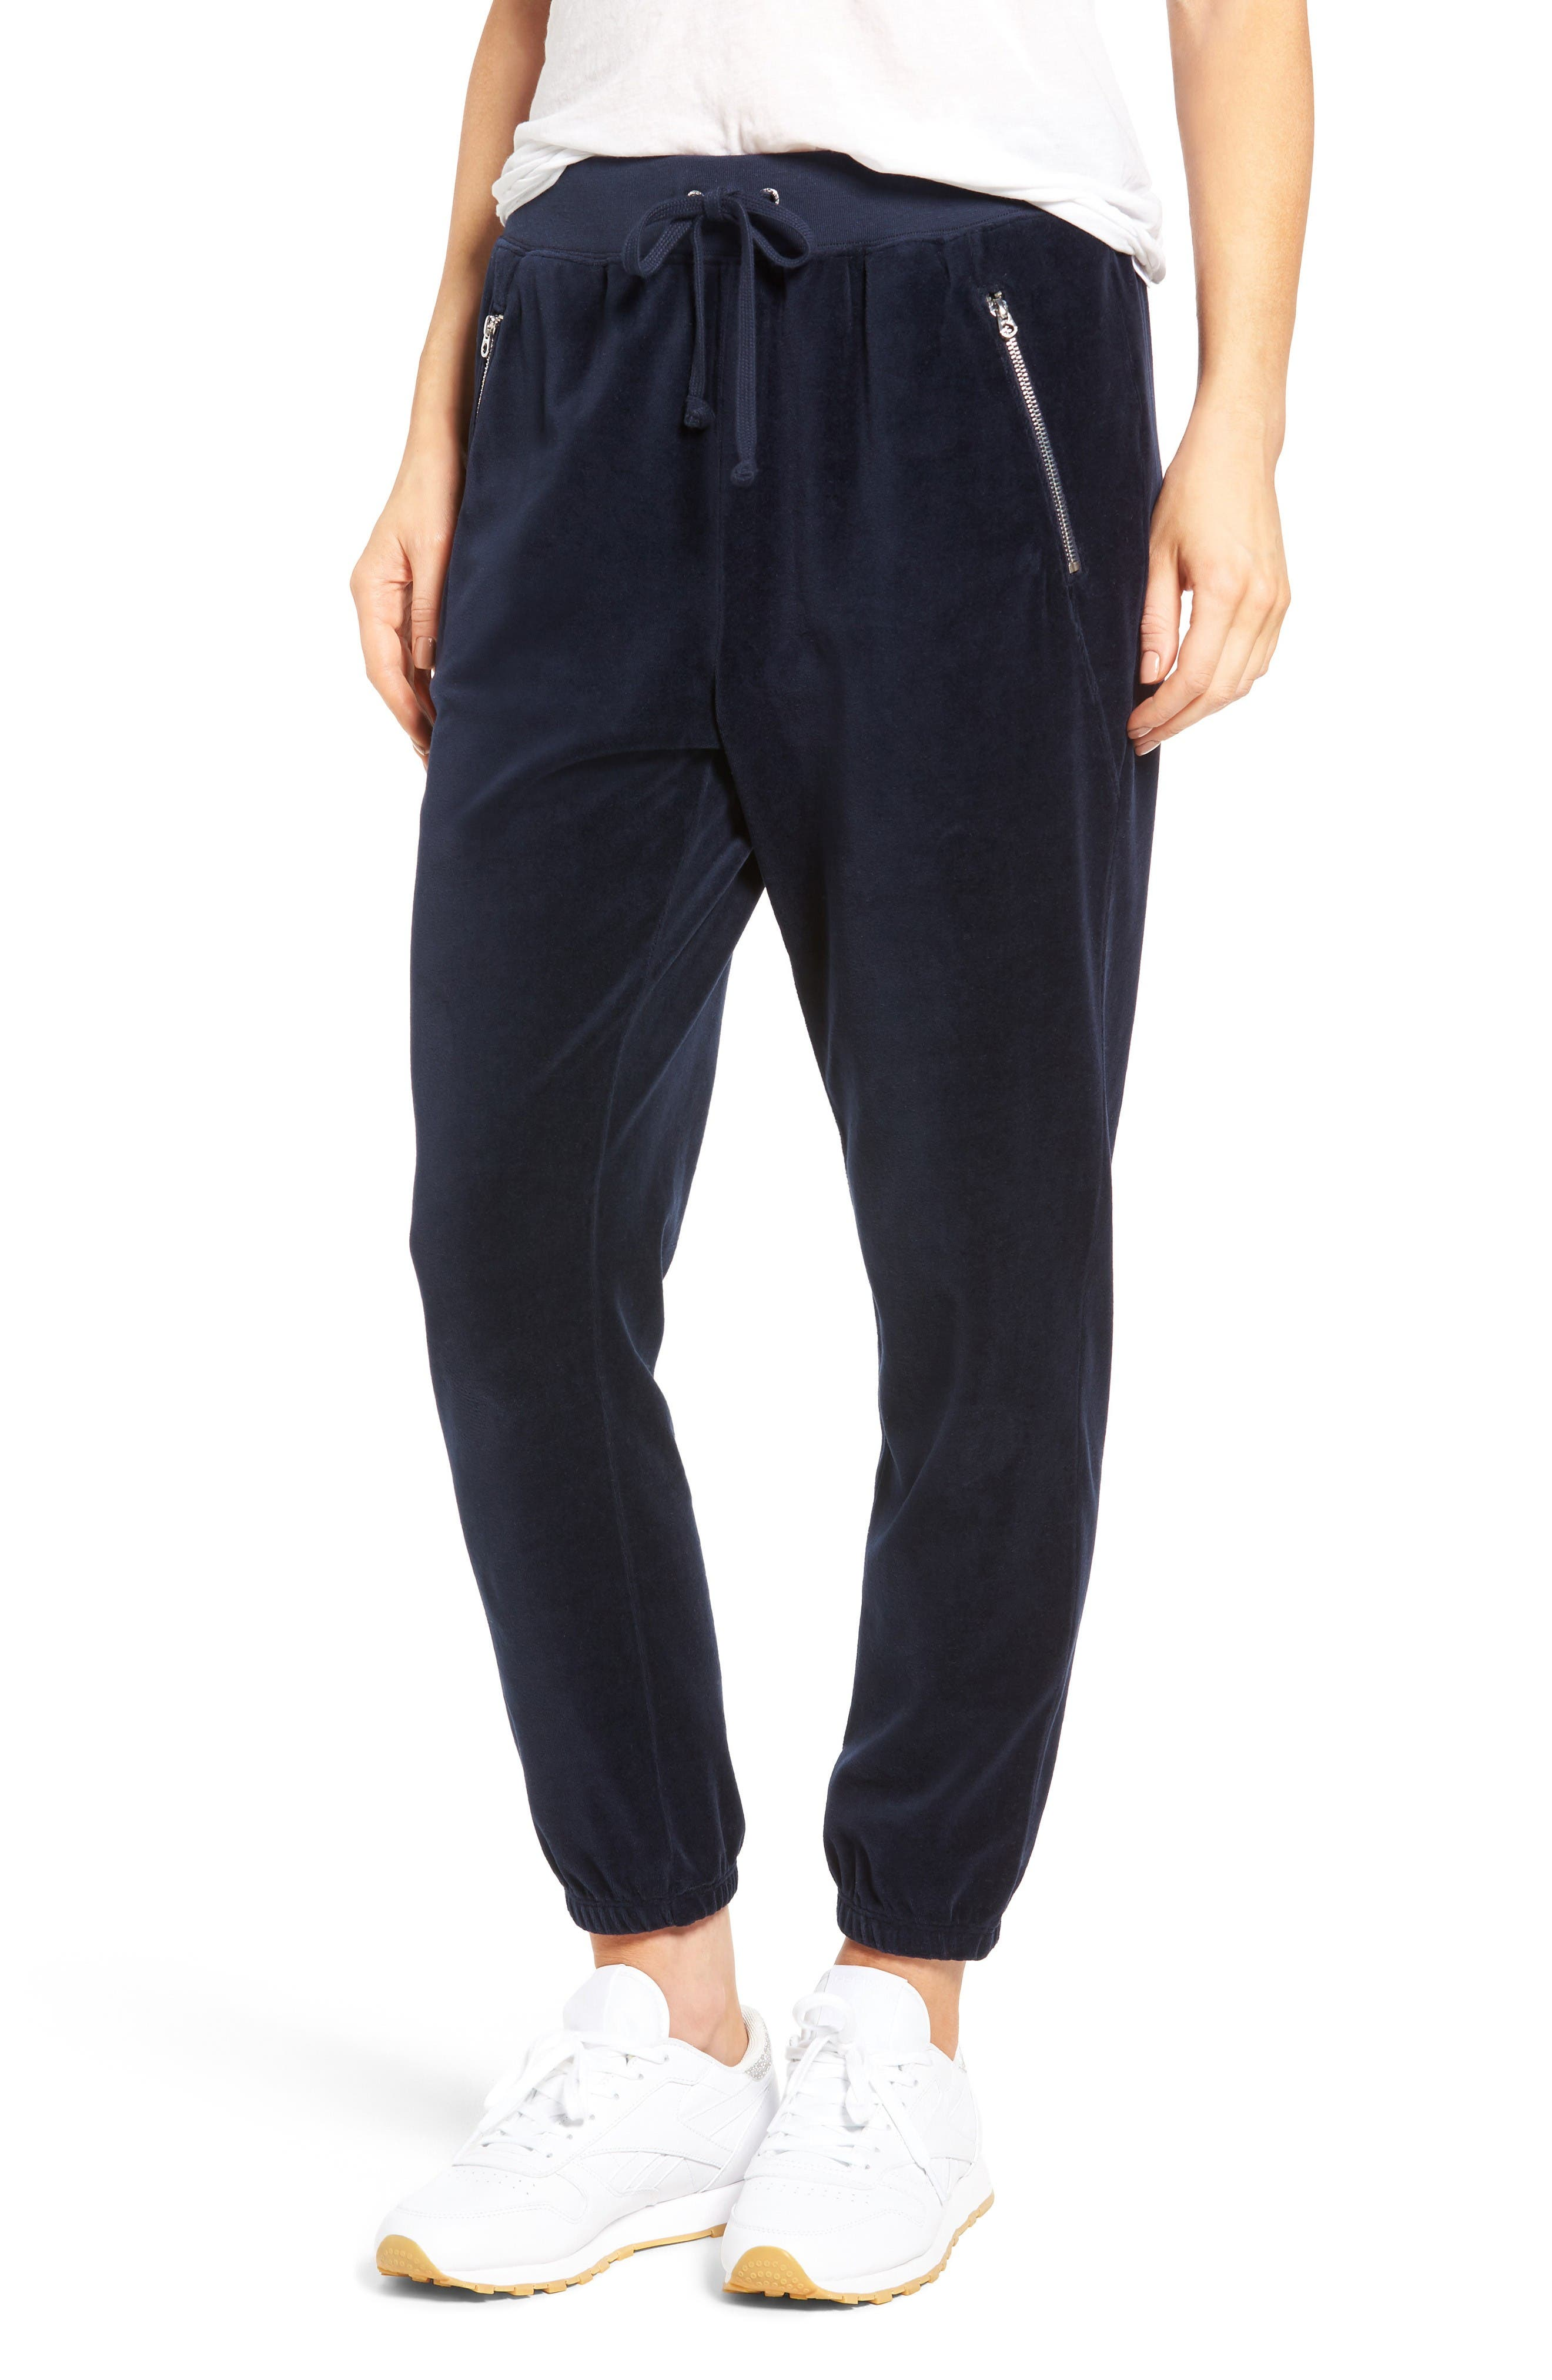 Alternate Image 1 Selected - Juicy Couture Silverlake Velour Track Pants